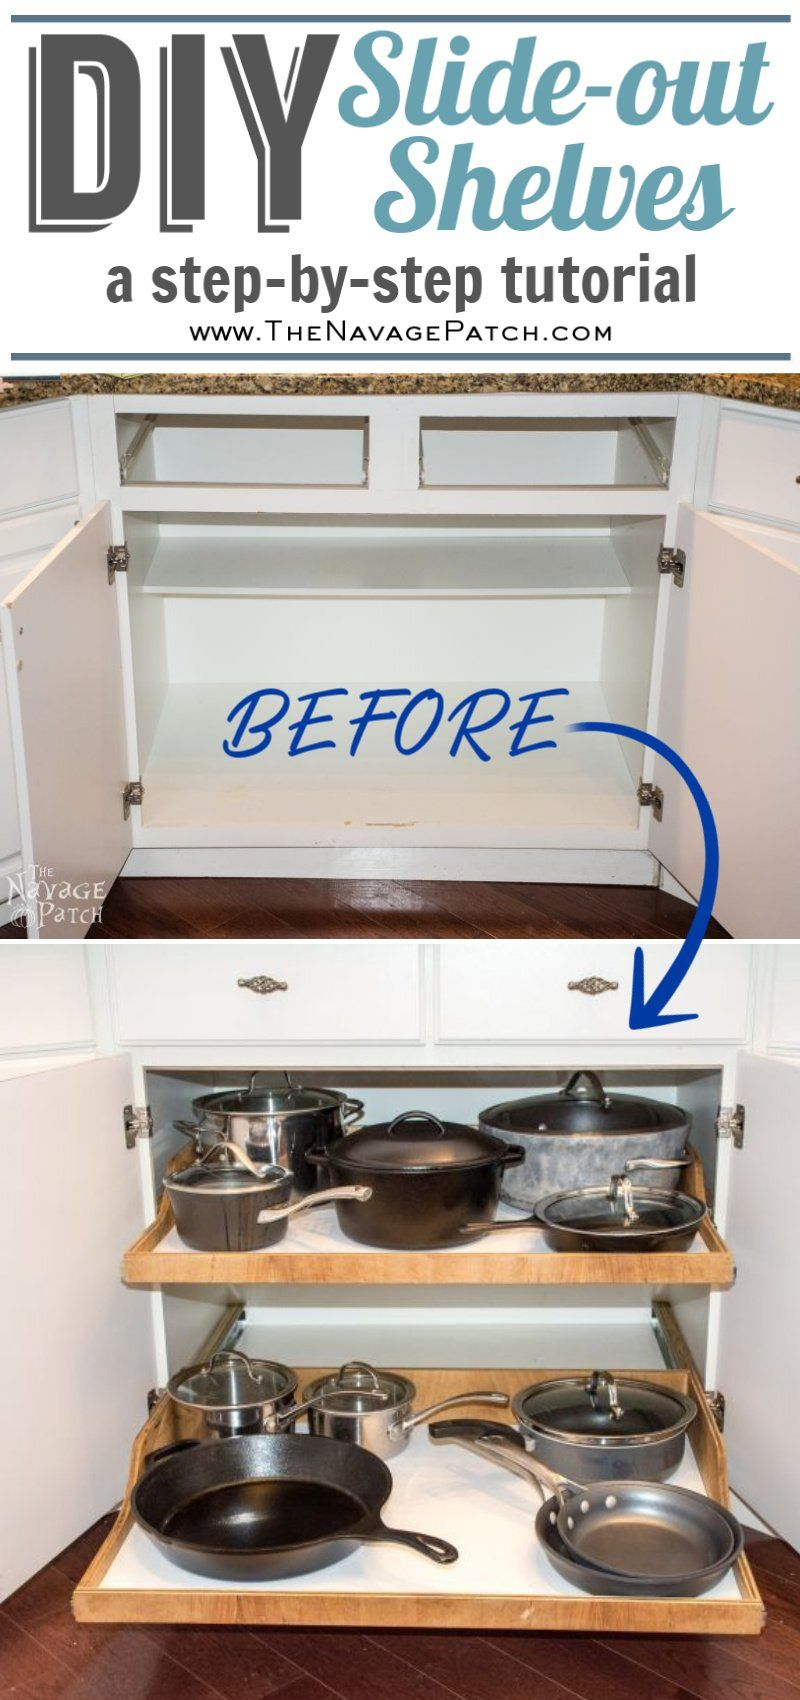 Diy Slide Out Shelves Tutorial The Navage Patch Cabinetry Diy Diy Pull Out Shelves Diy Kitchen Cabinets